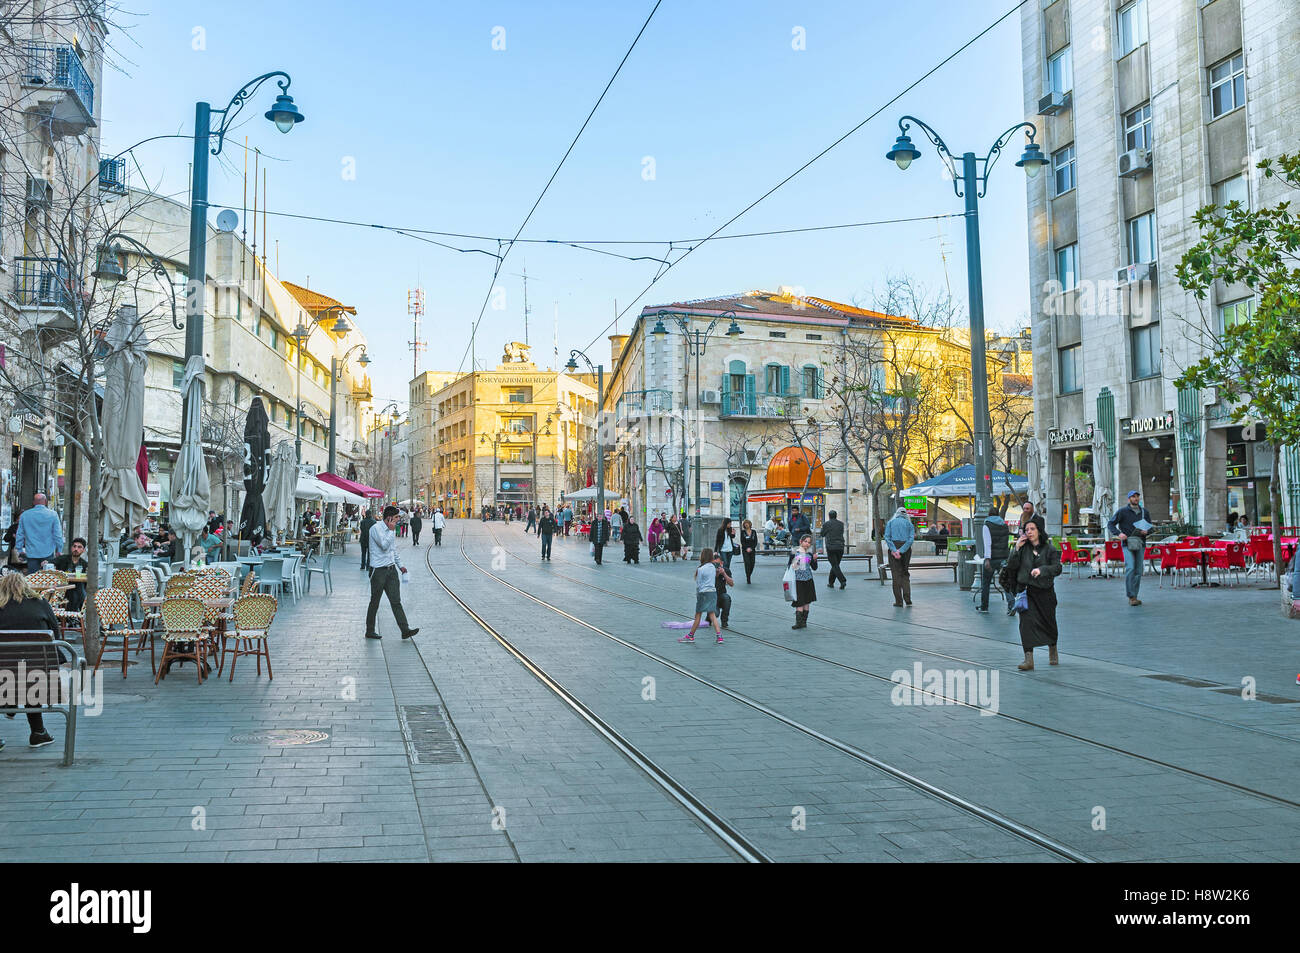 Jaffa Road is the best place to relax in cafe or have some shopping - Stock Image